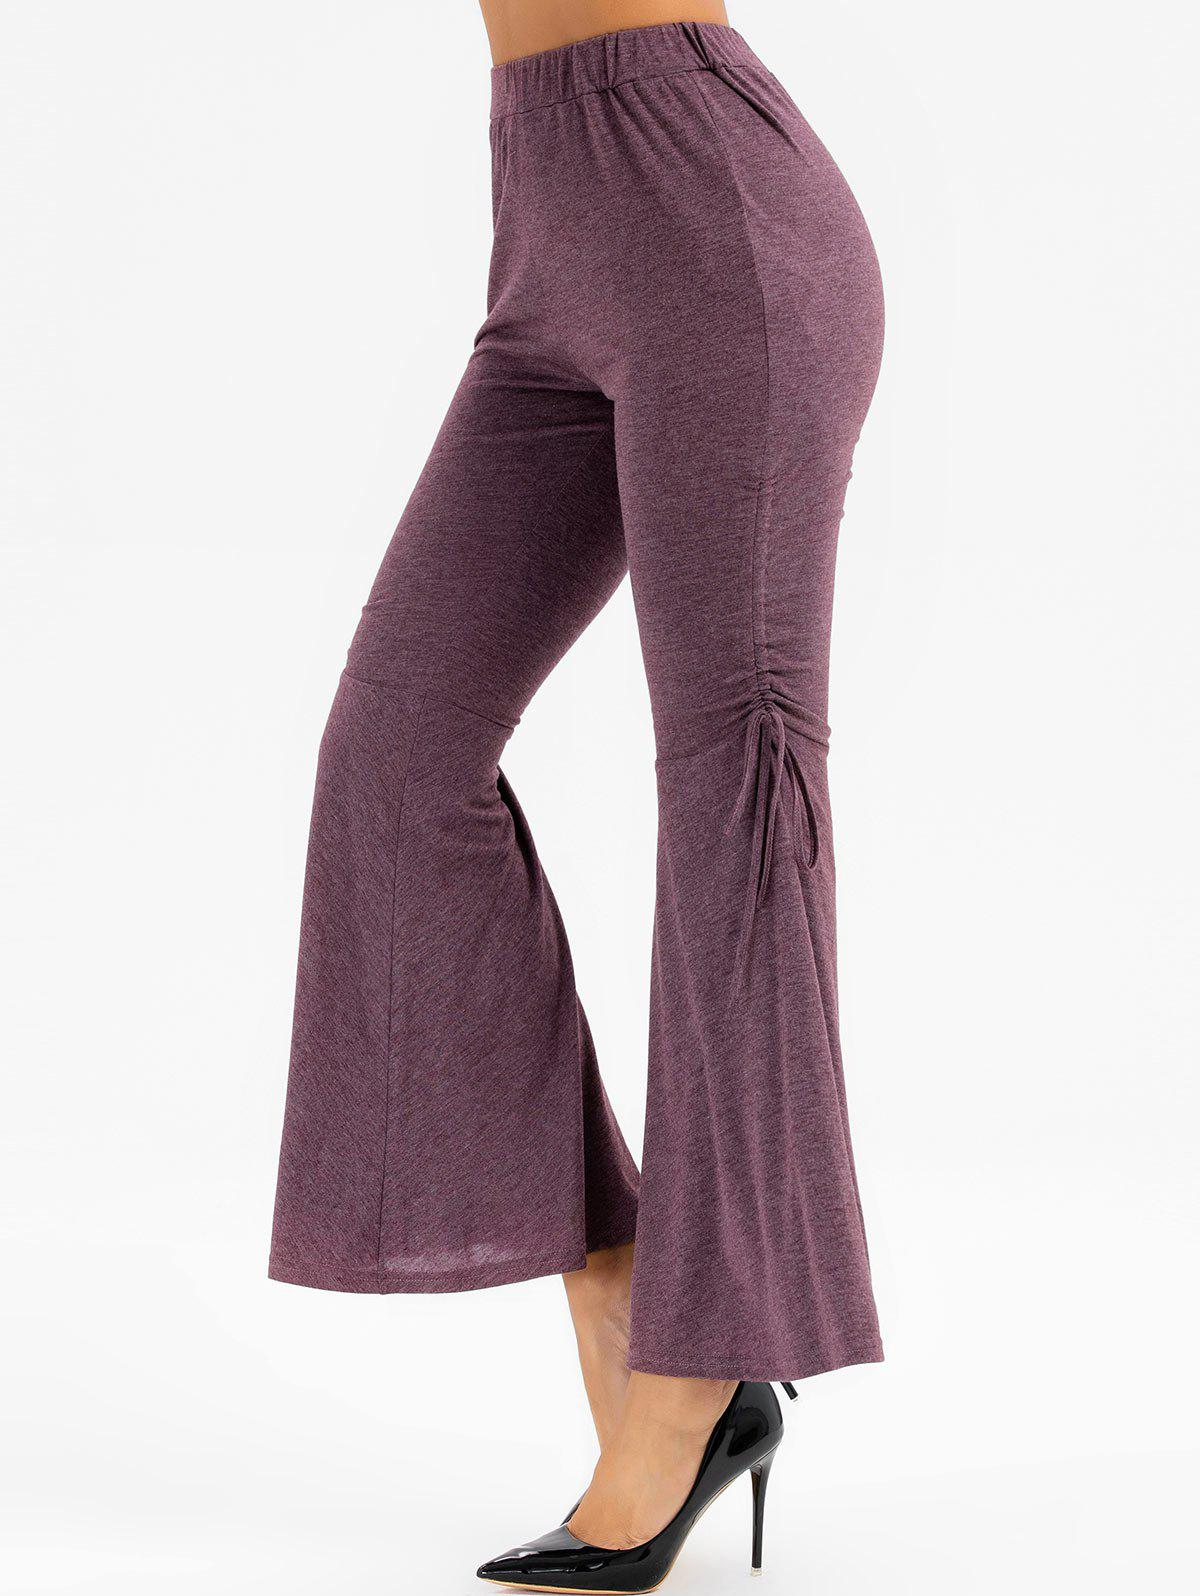 Chic High Waisted Heathered Cinched Flare Pants